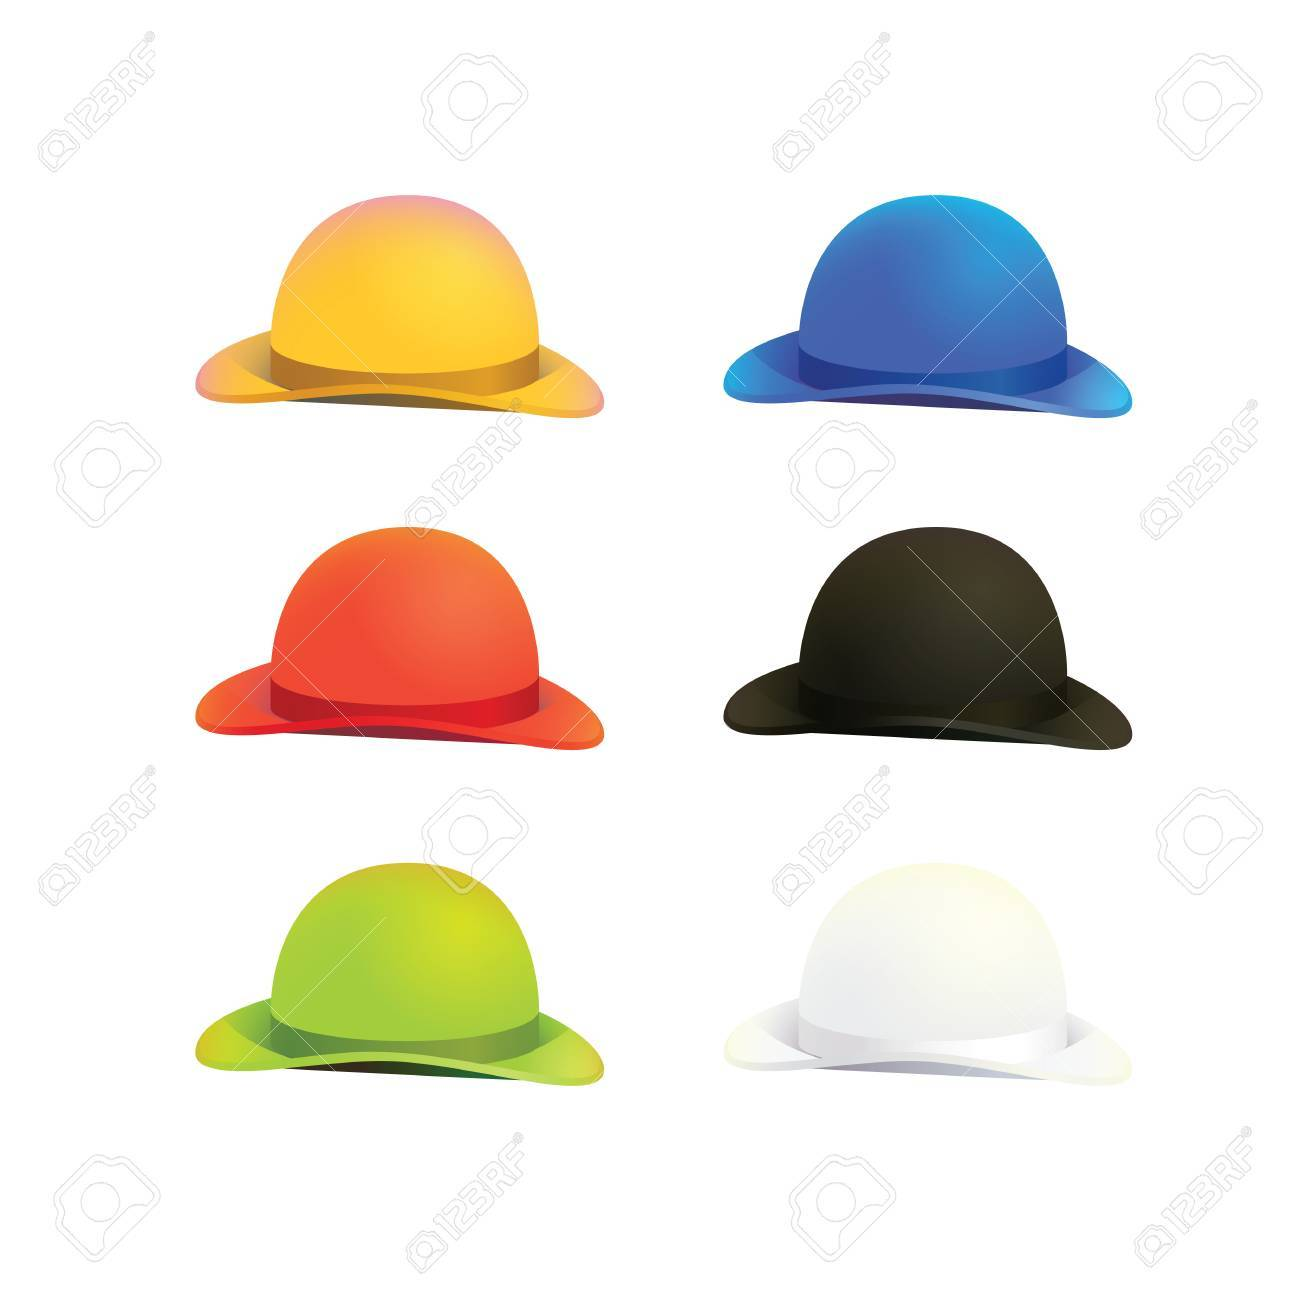 00b1b4a0a8c3c Illustration Of Six Colors Bowler Or Derby Hat Royalty Free Cliparts ...